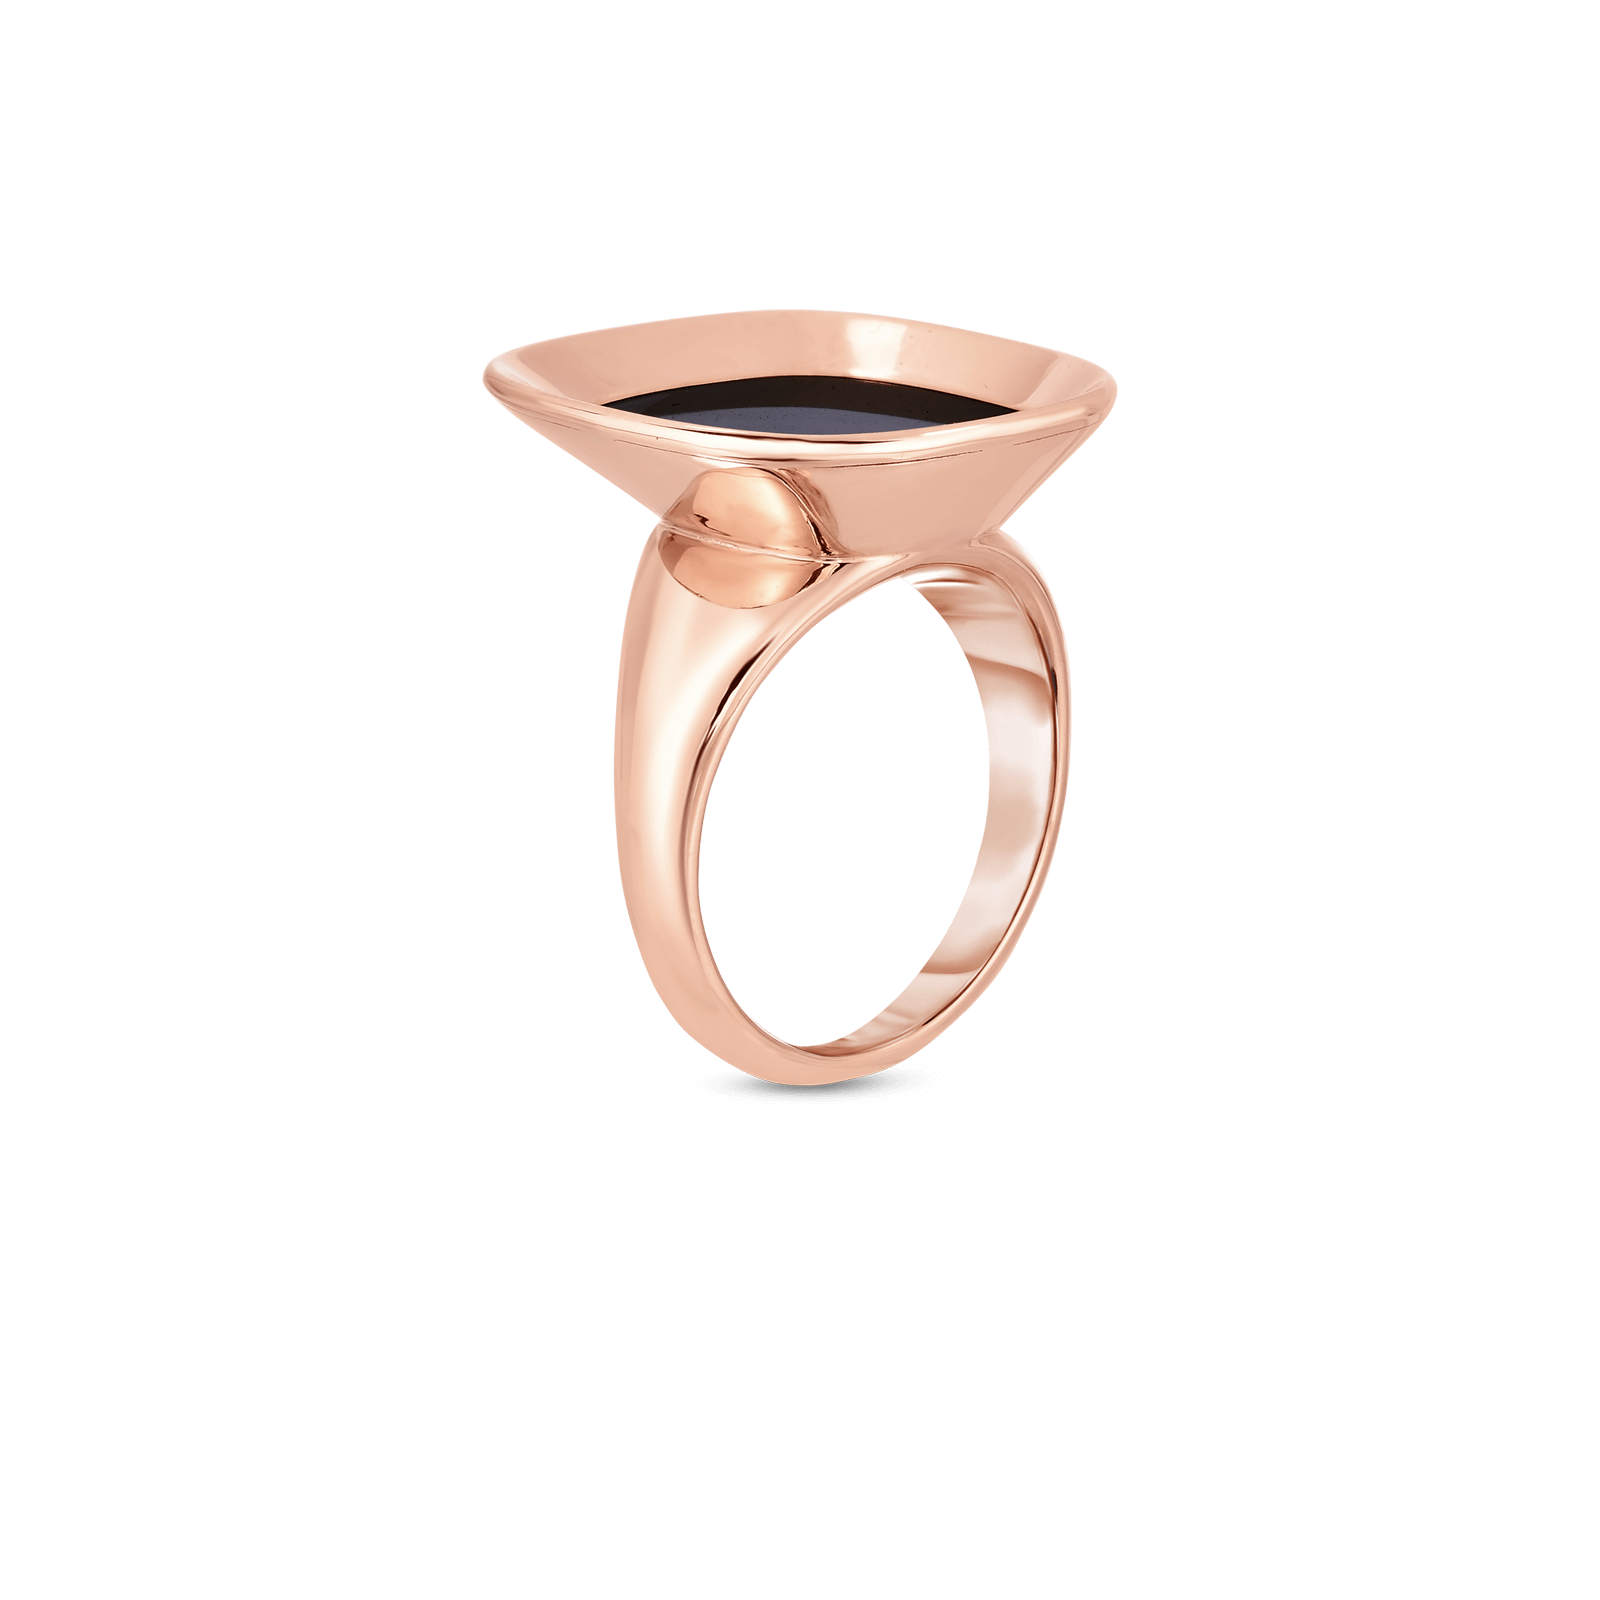 Roberto-Coin-18k-rose-gold-Small Ring with Black Jade-8882208AX65Balt